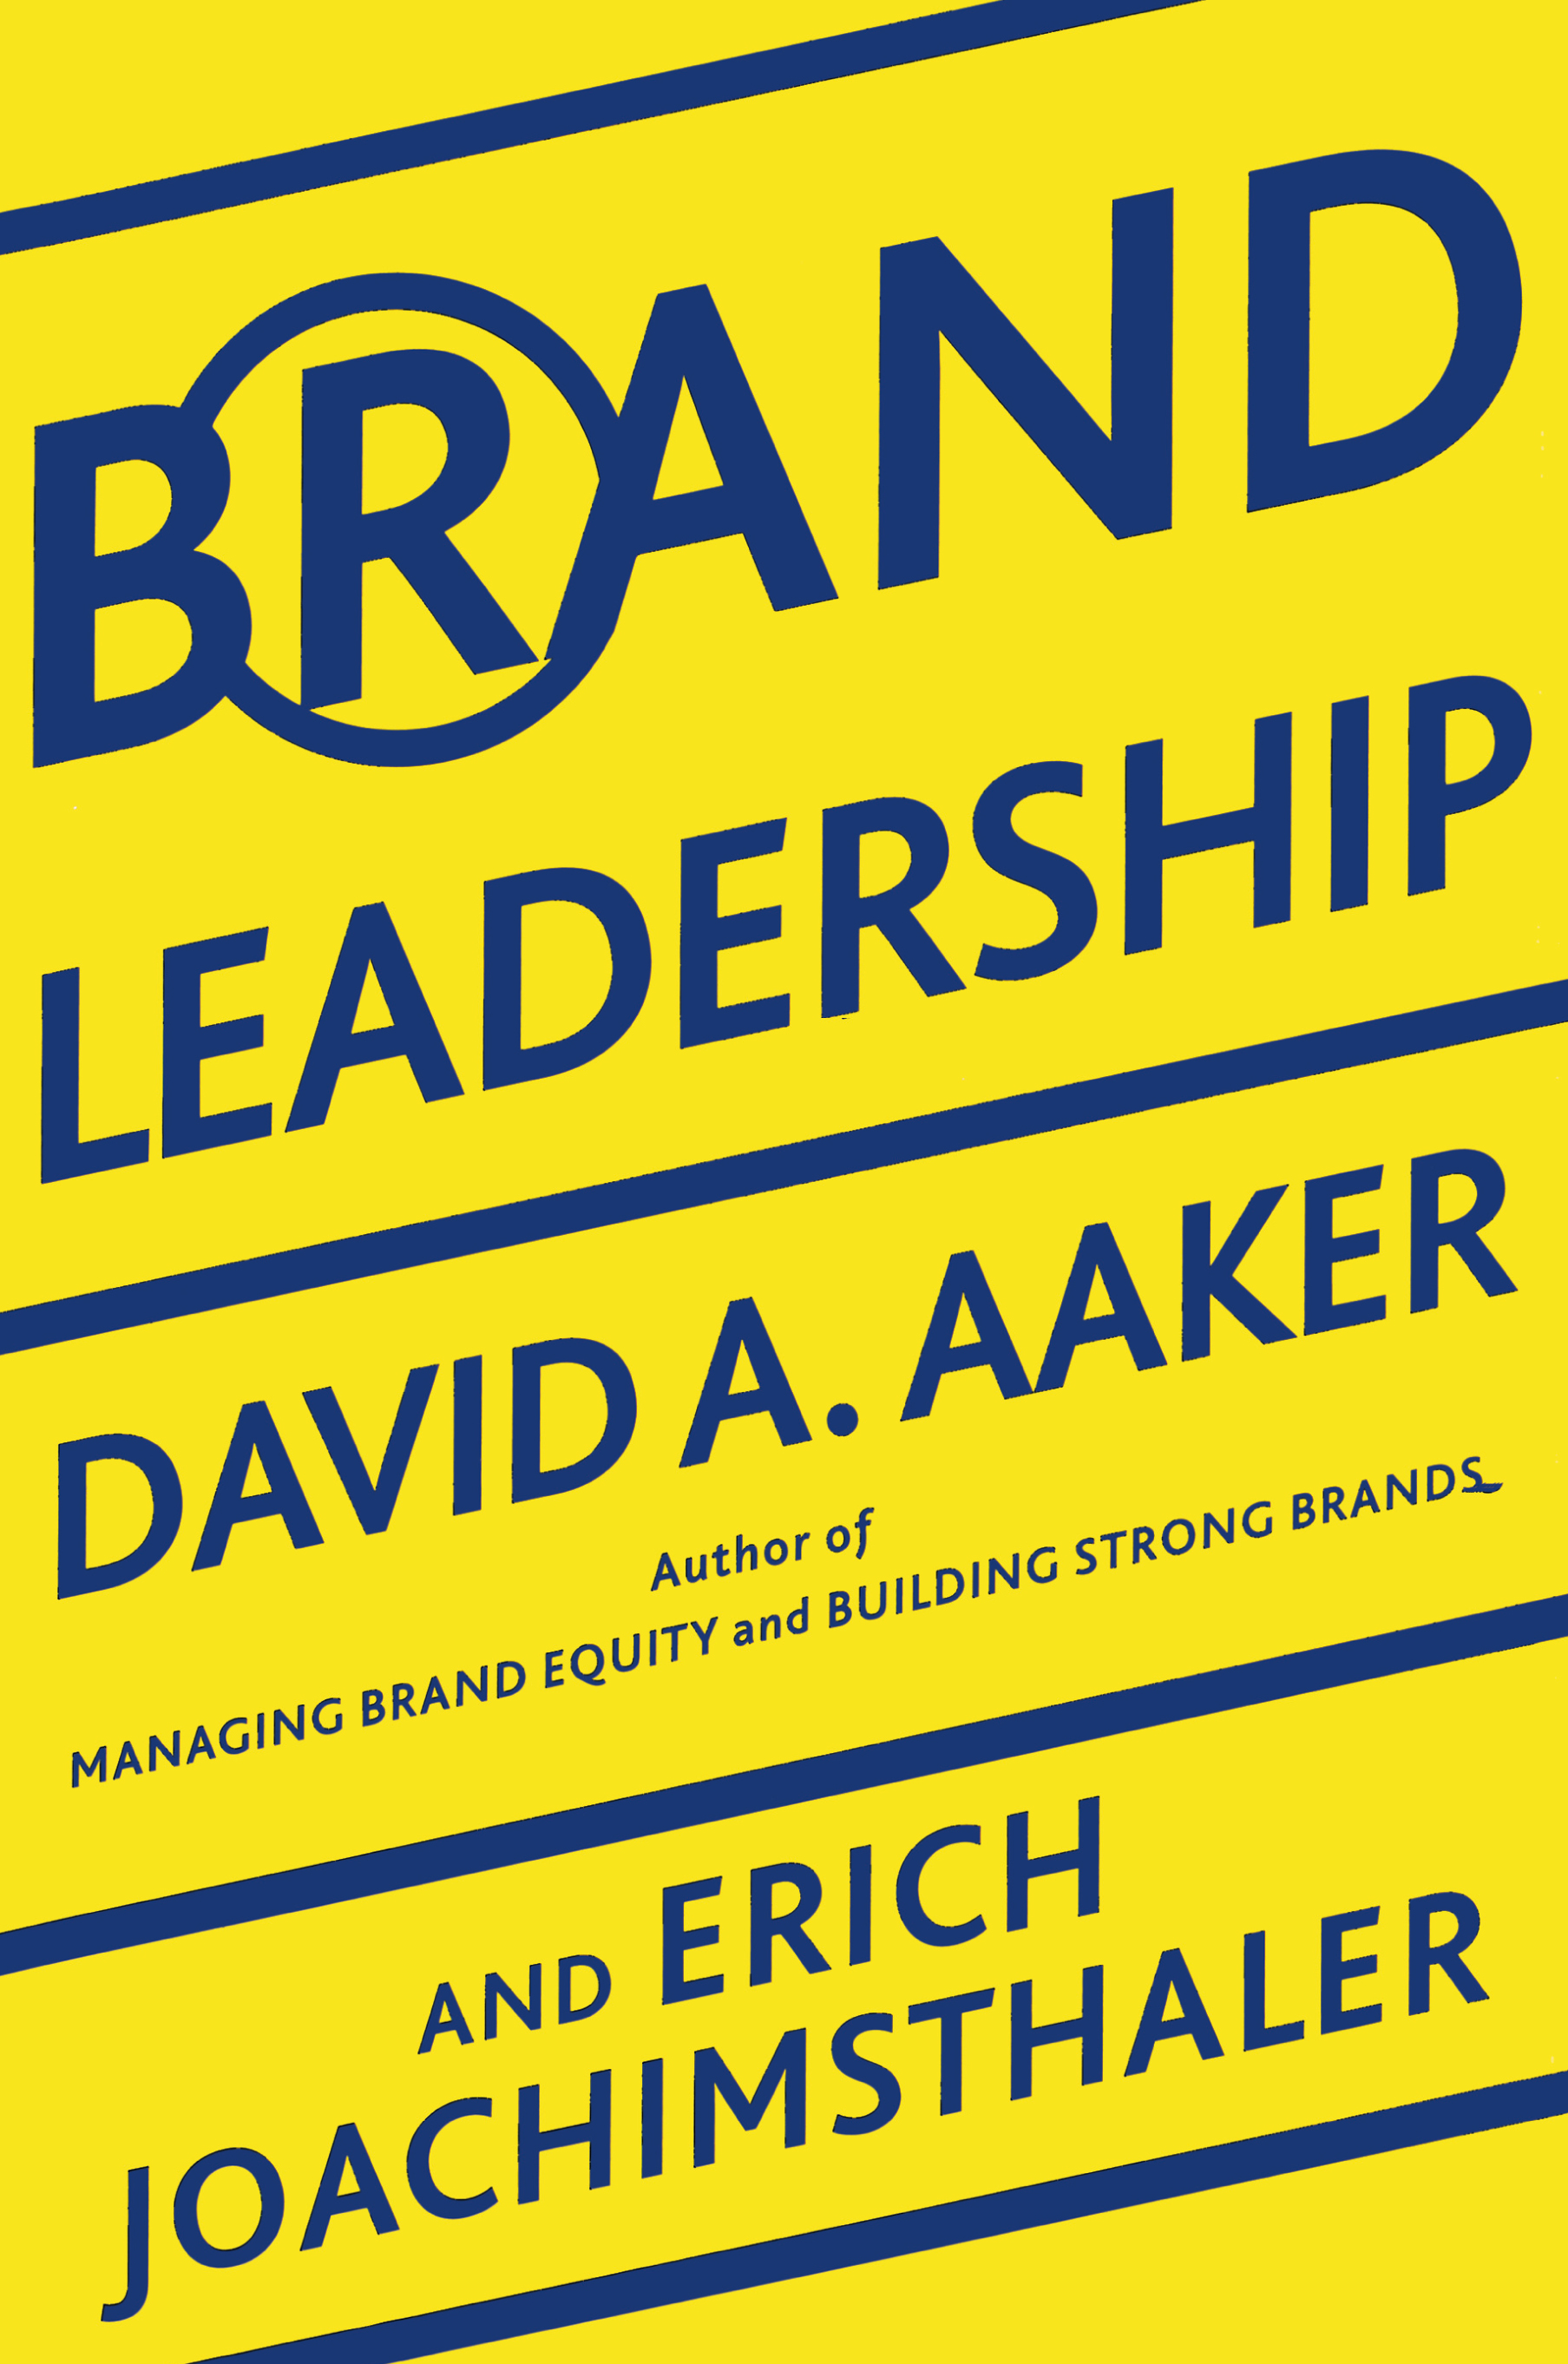 Brand portfolio strategy book by david a aaker official brand leadership buycottarizona